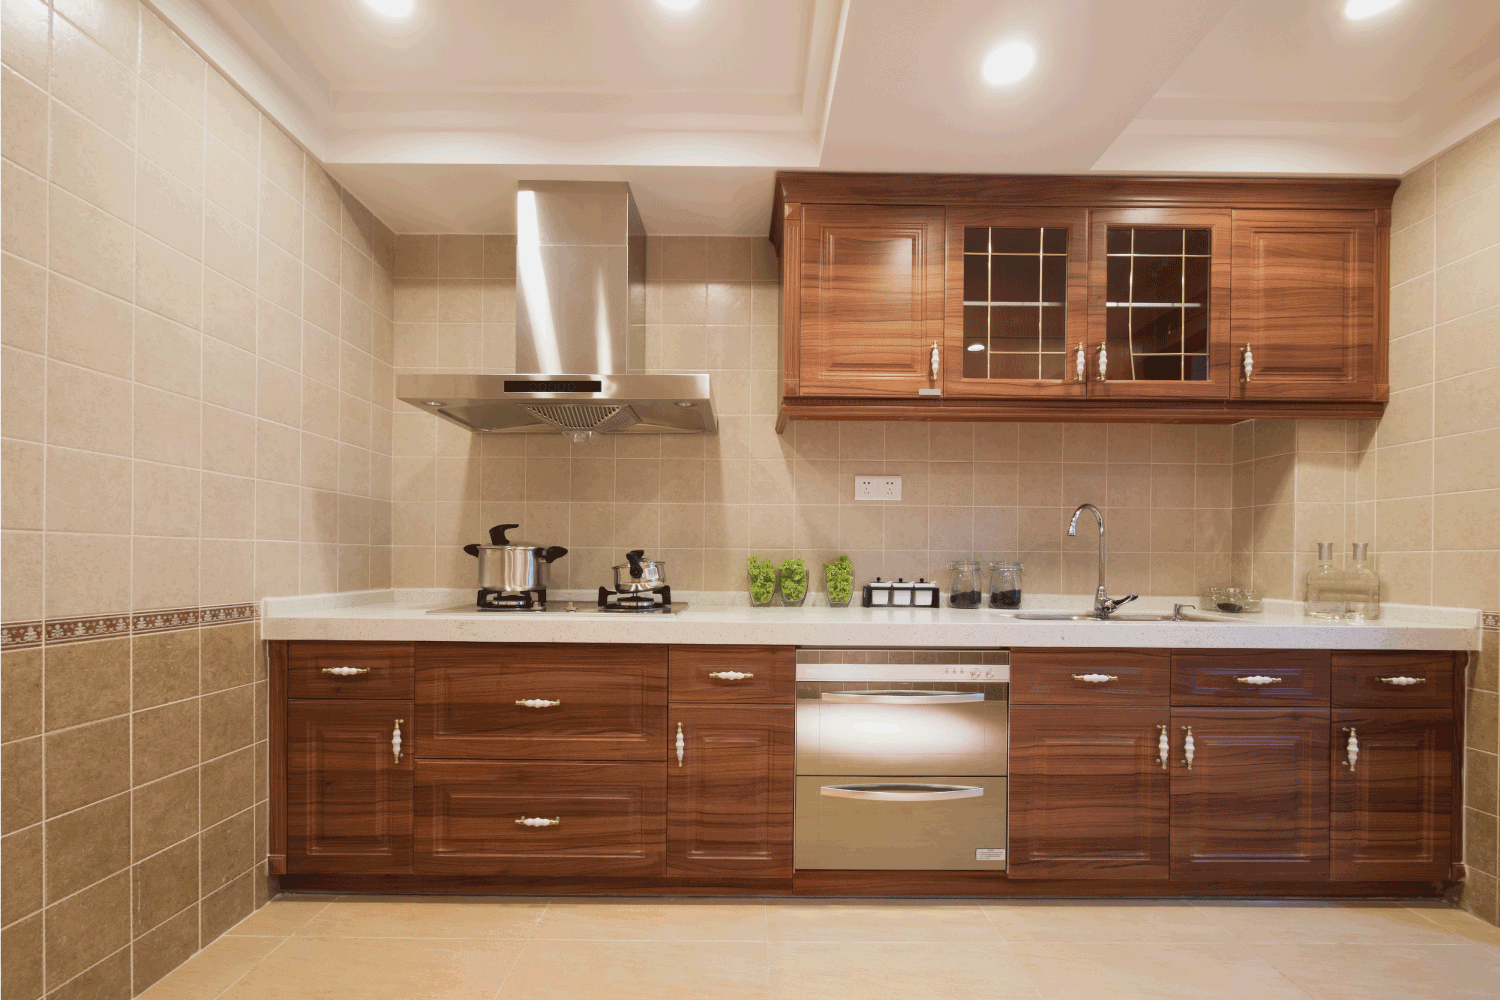 kitchen with wooden cabinets, floor to ceiling tile, marble countertop, and painted floor